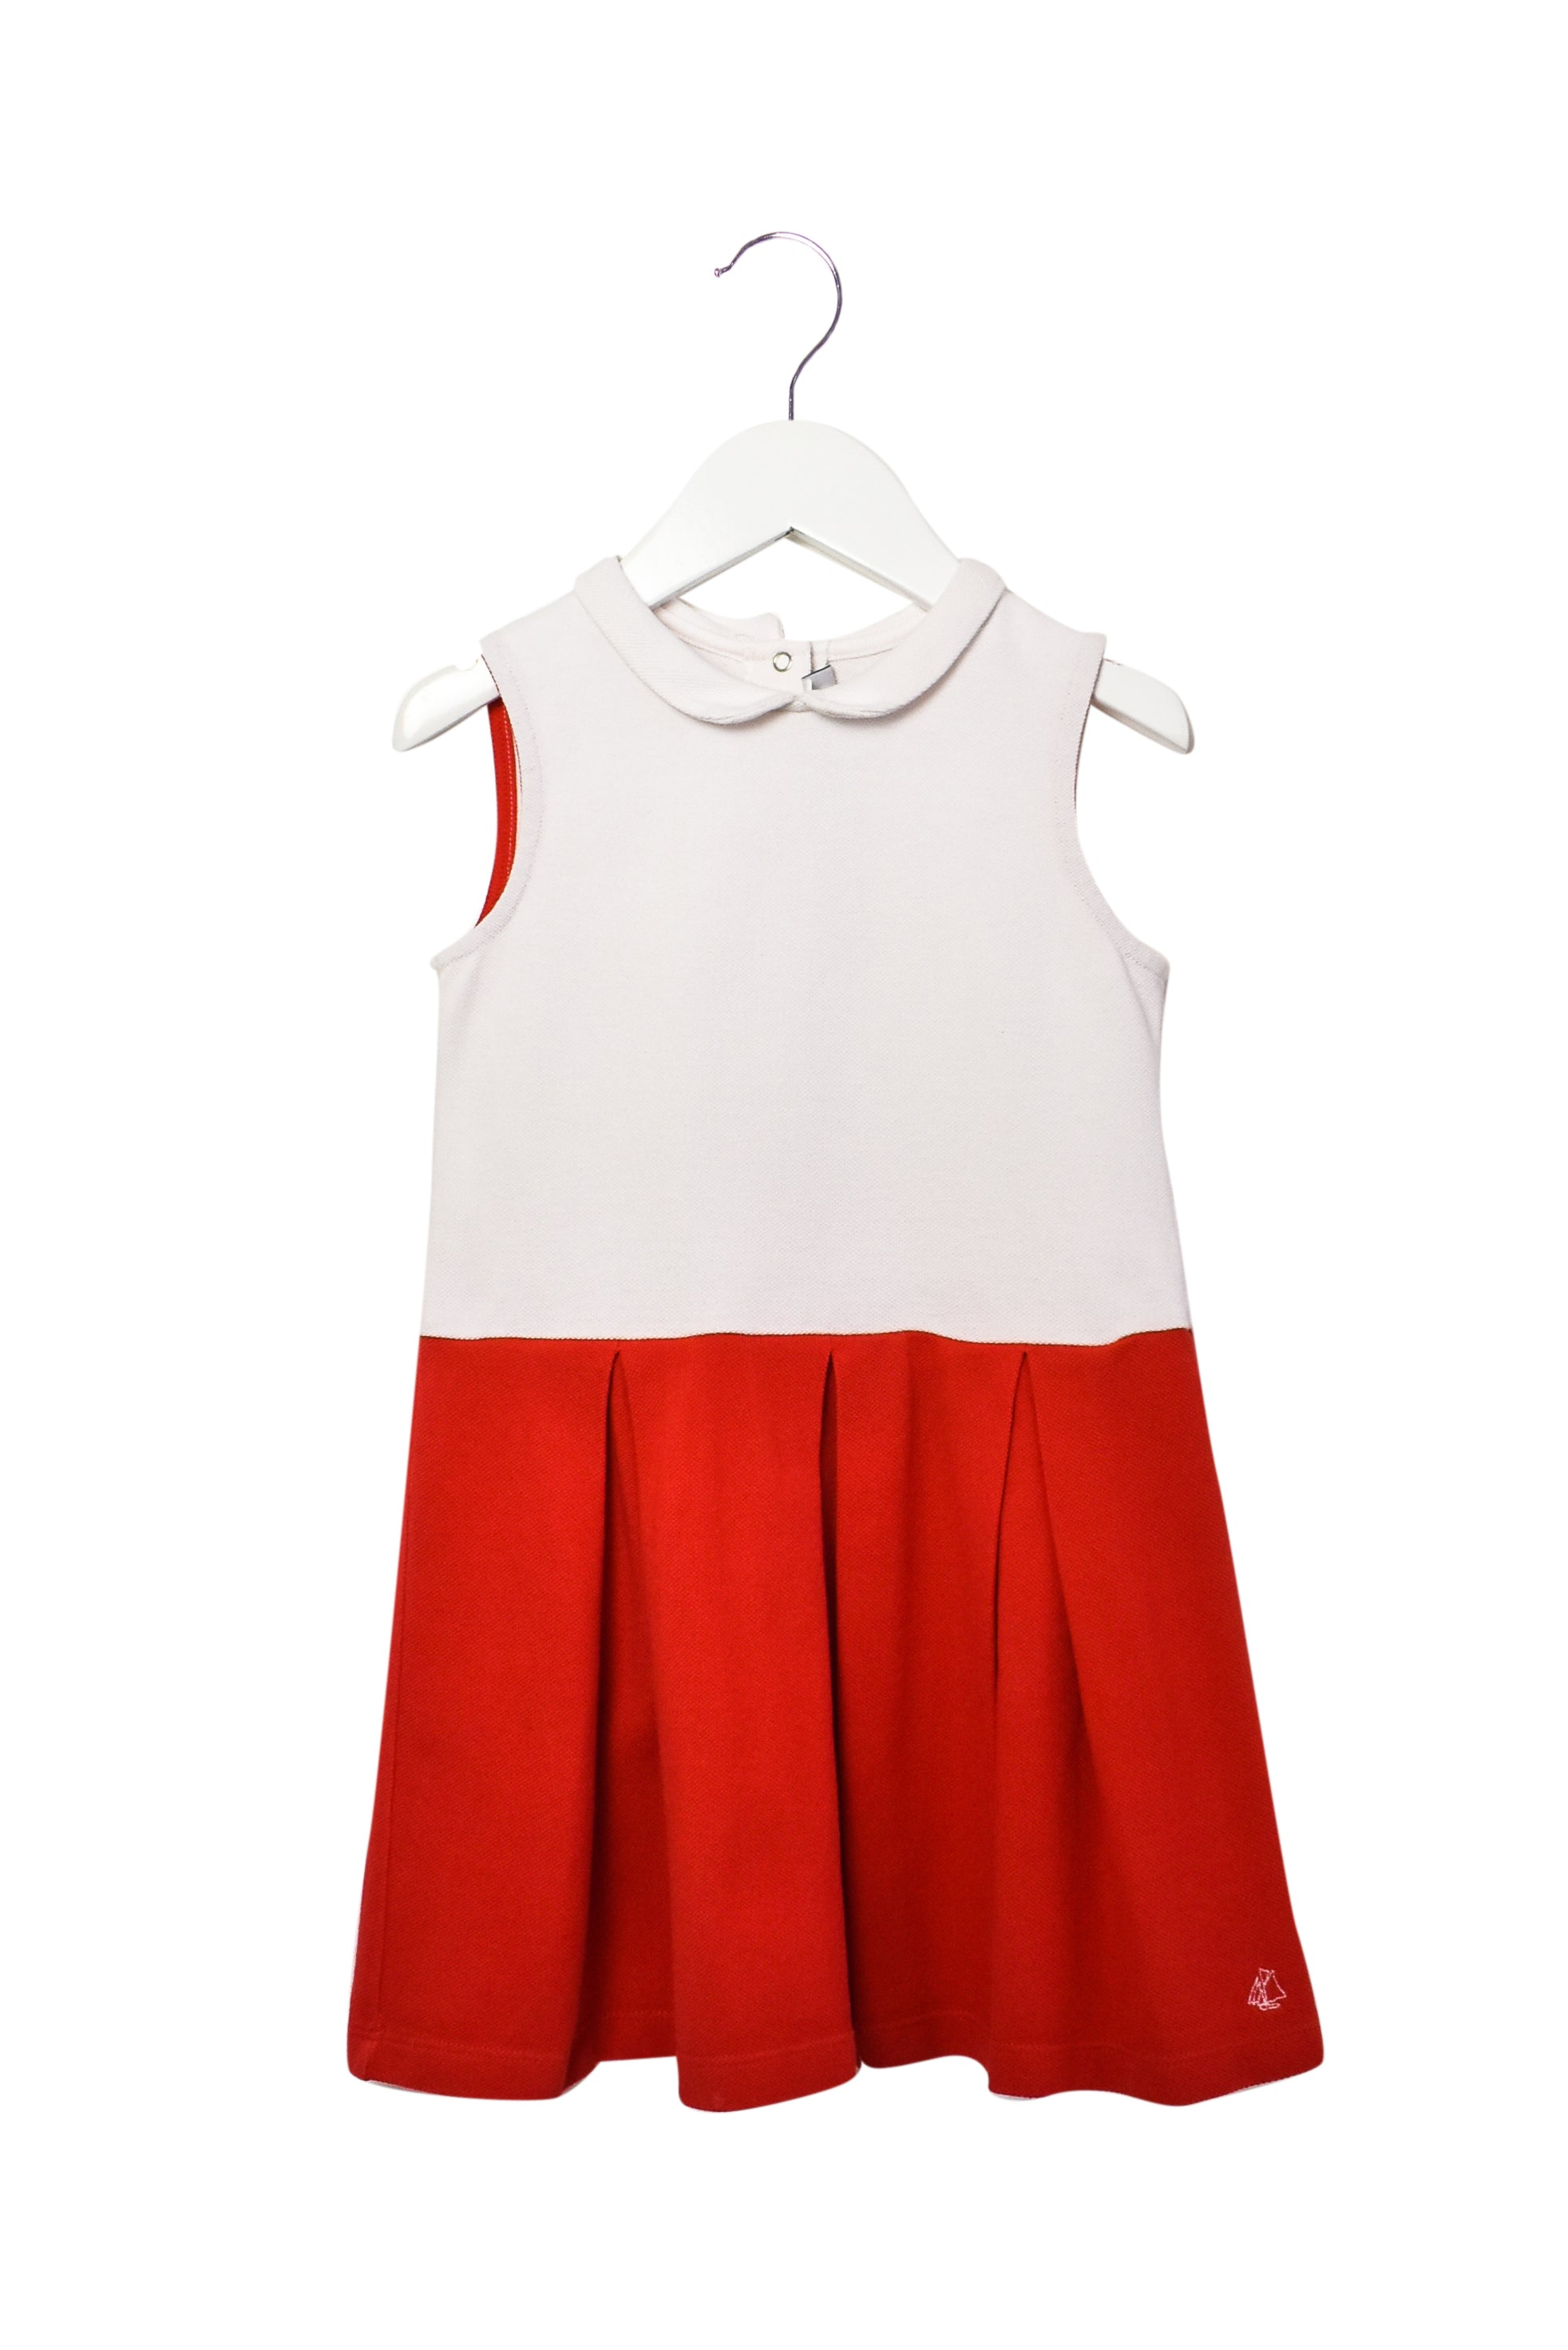 10008673 Petit Bateau Kids~ Dress 6T at Retykle